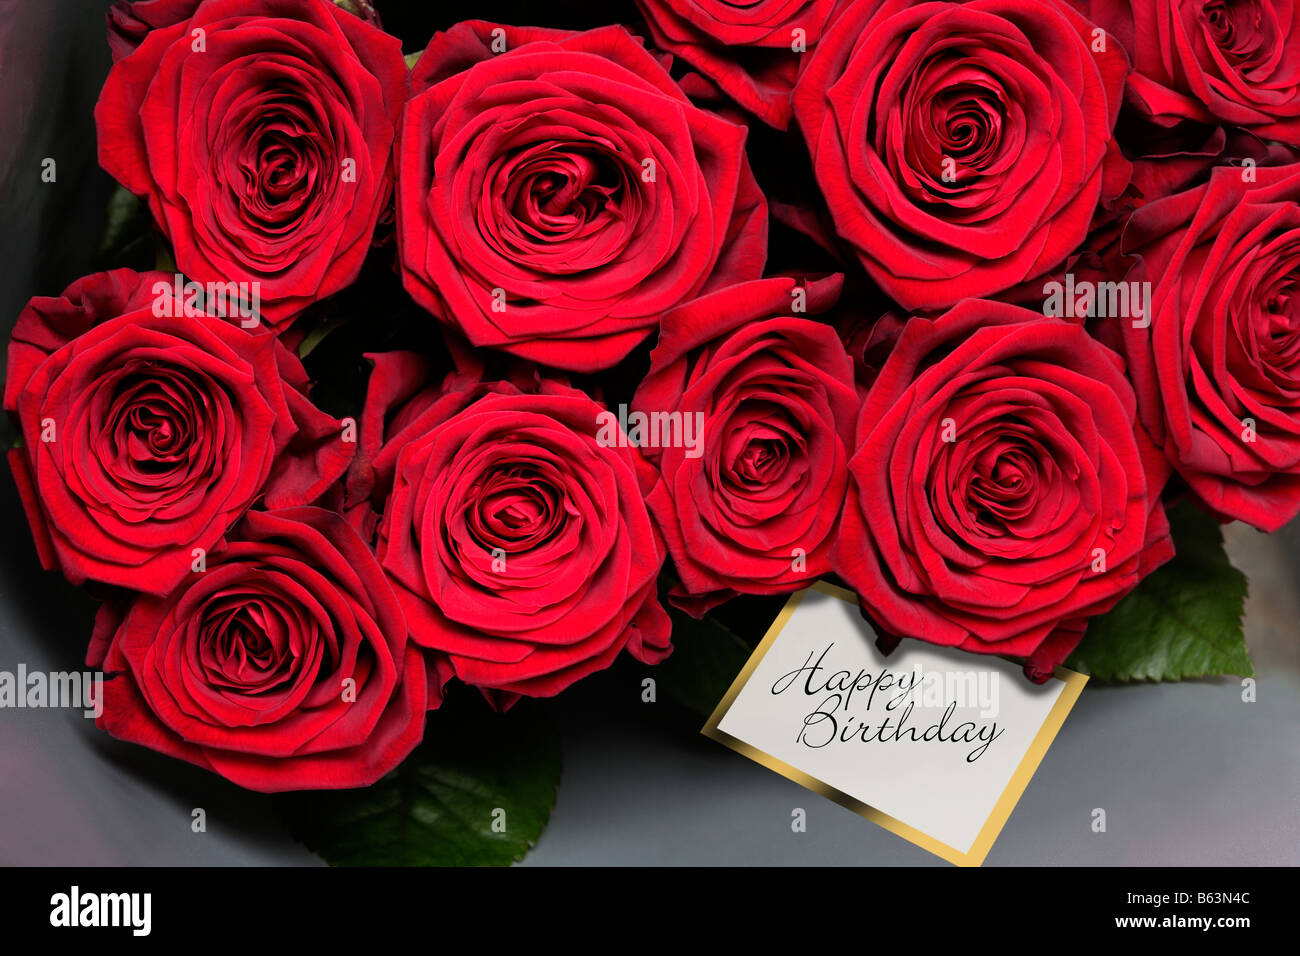 Red Roses With Happy Birthday Gift Tag Stock Photo 20980748 Alamy